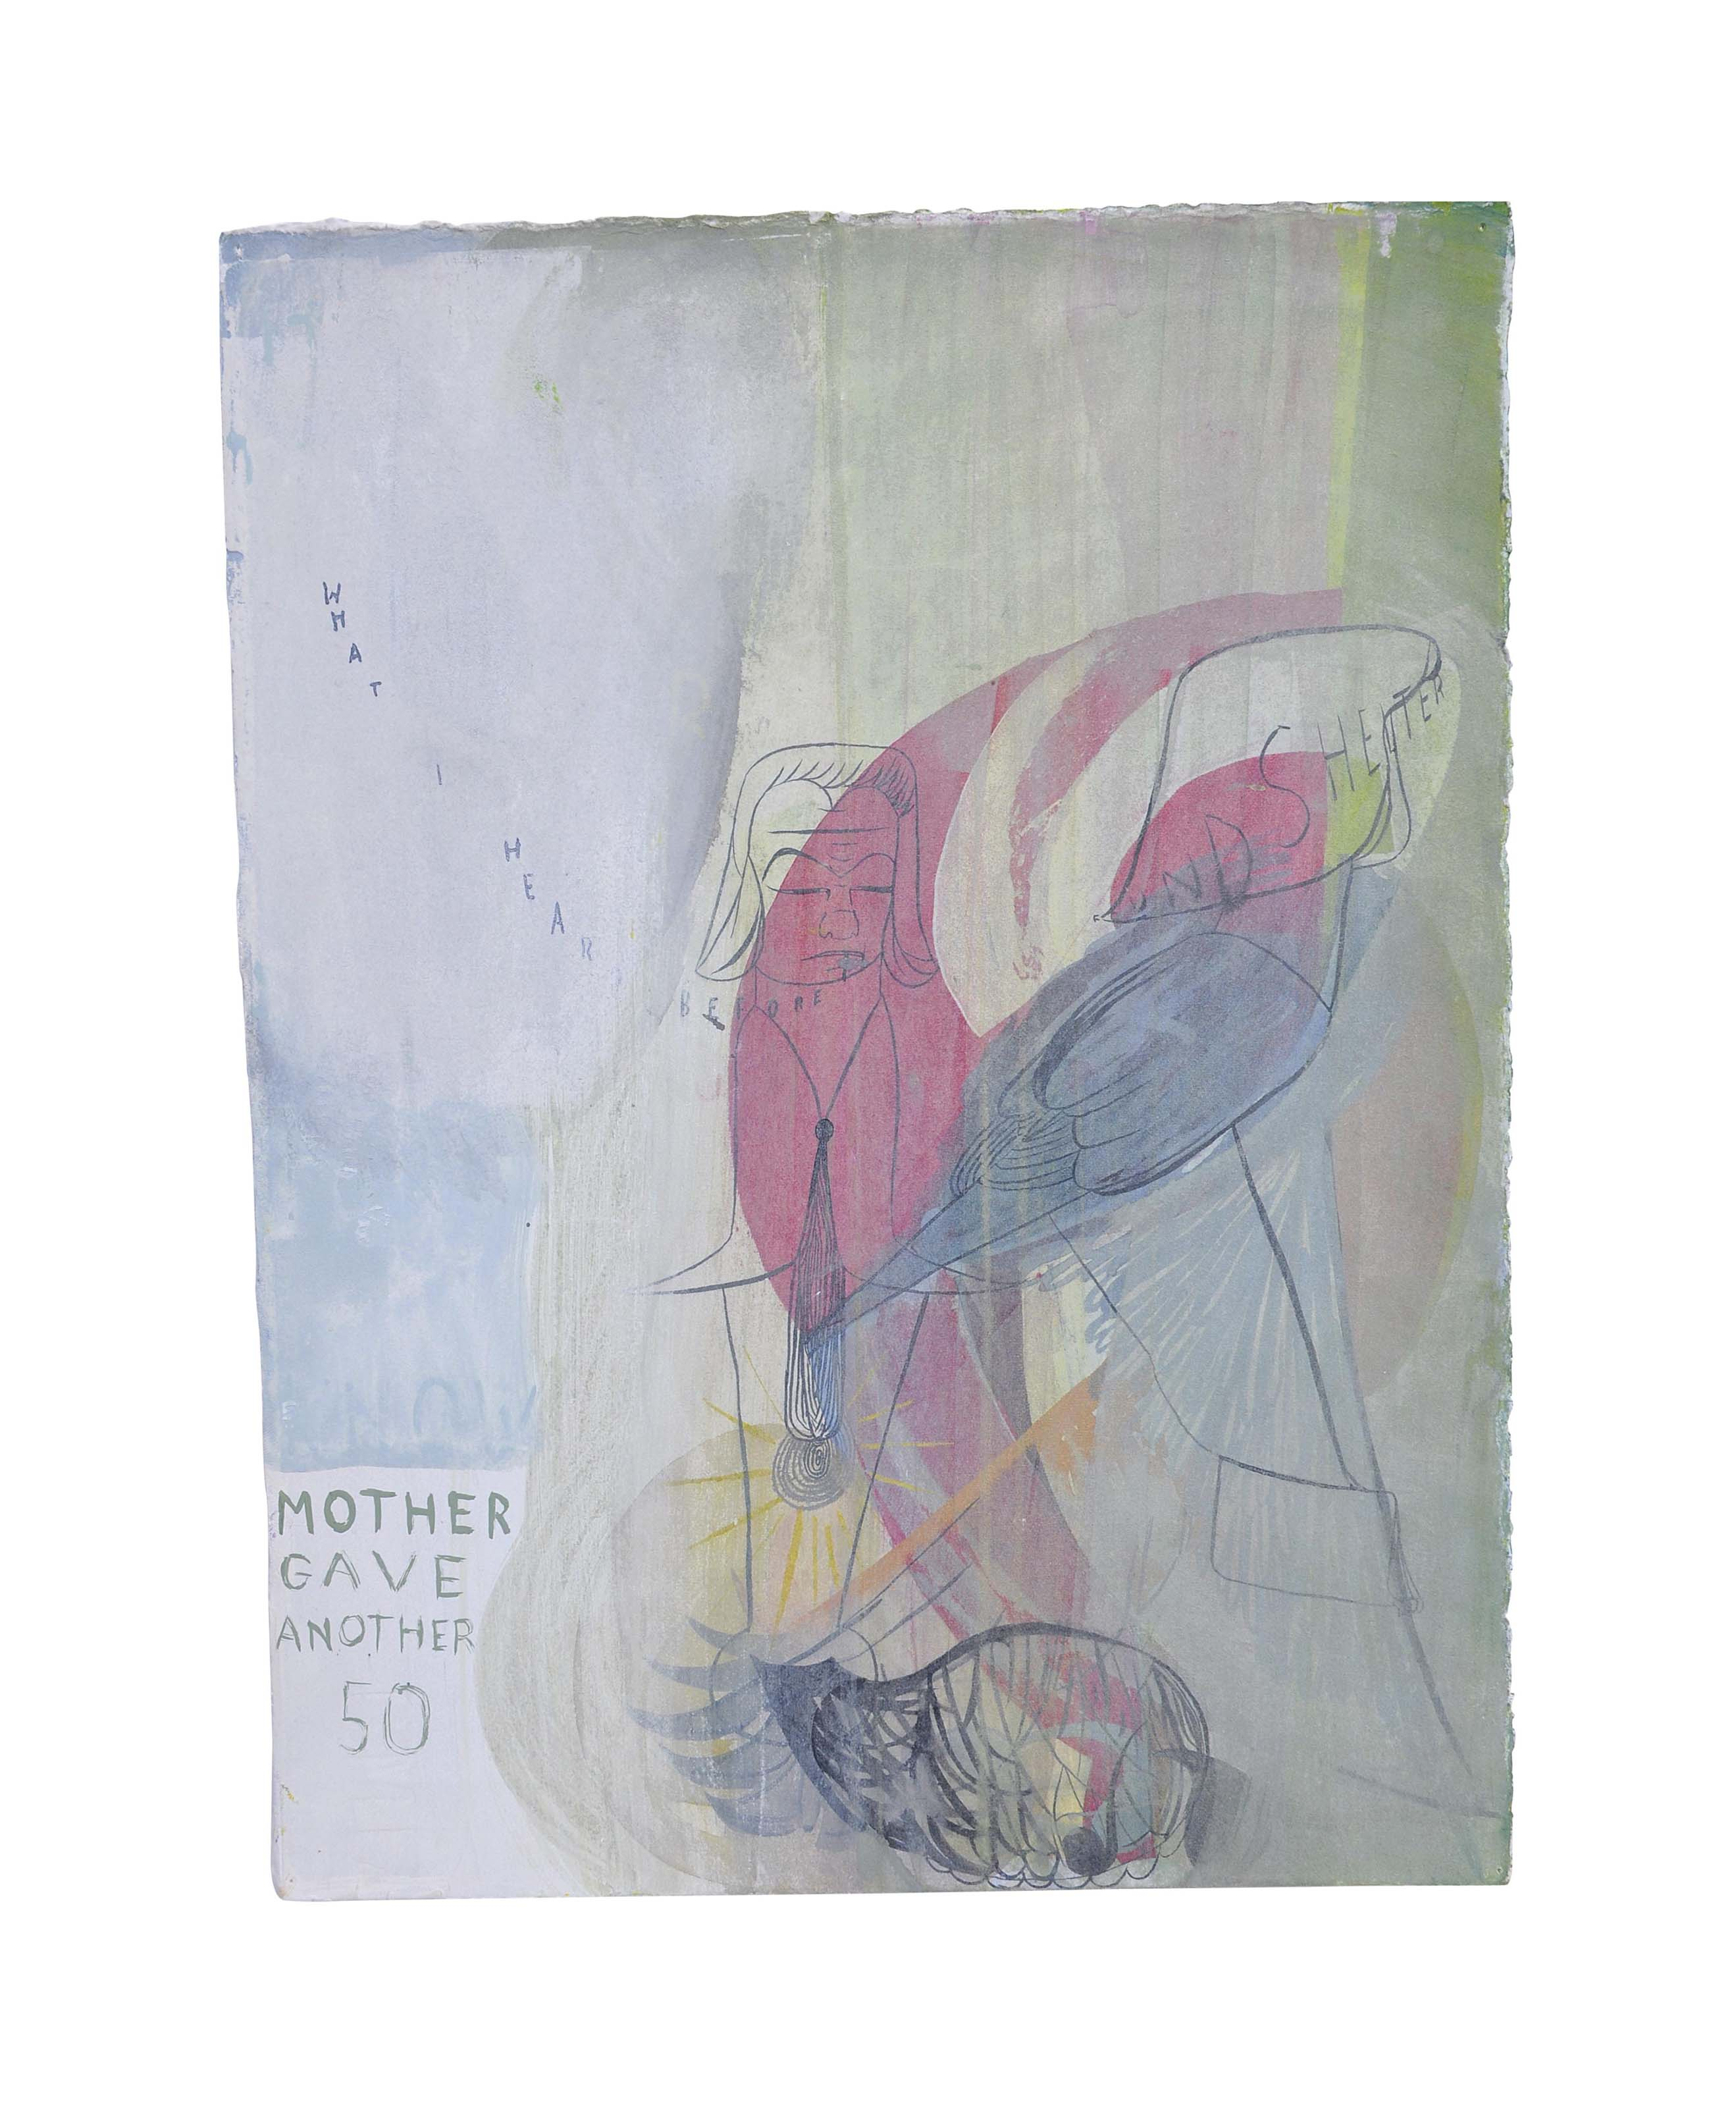 Untitled (Mother gave another 50)